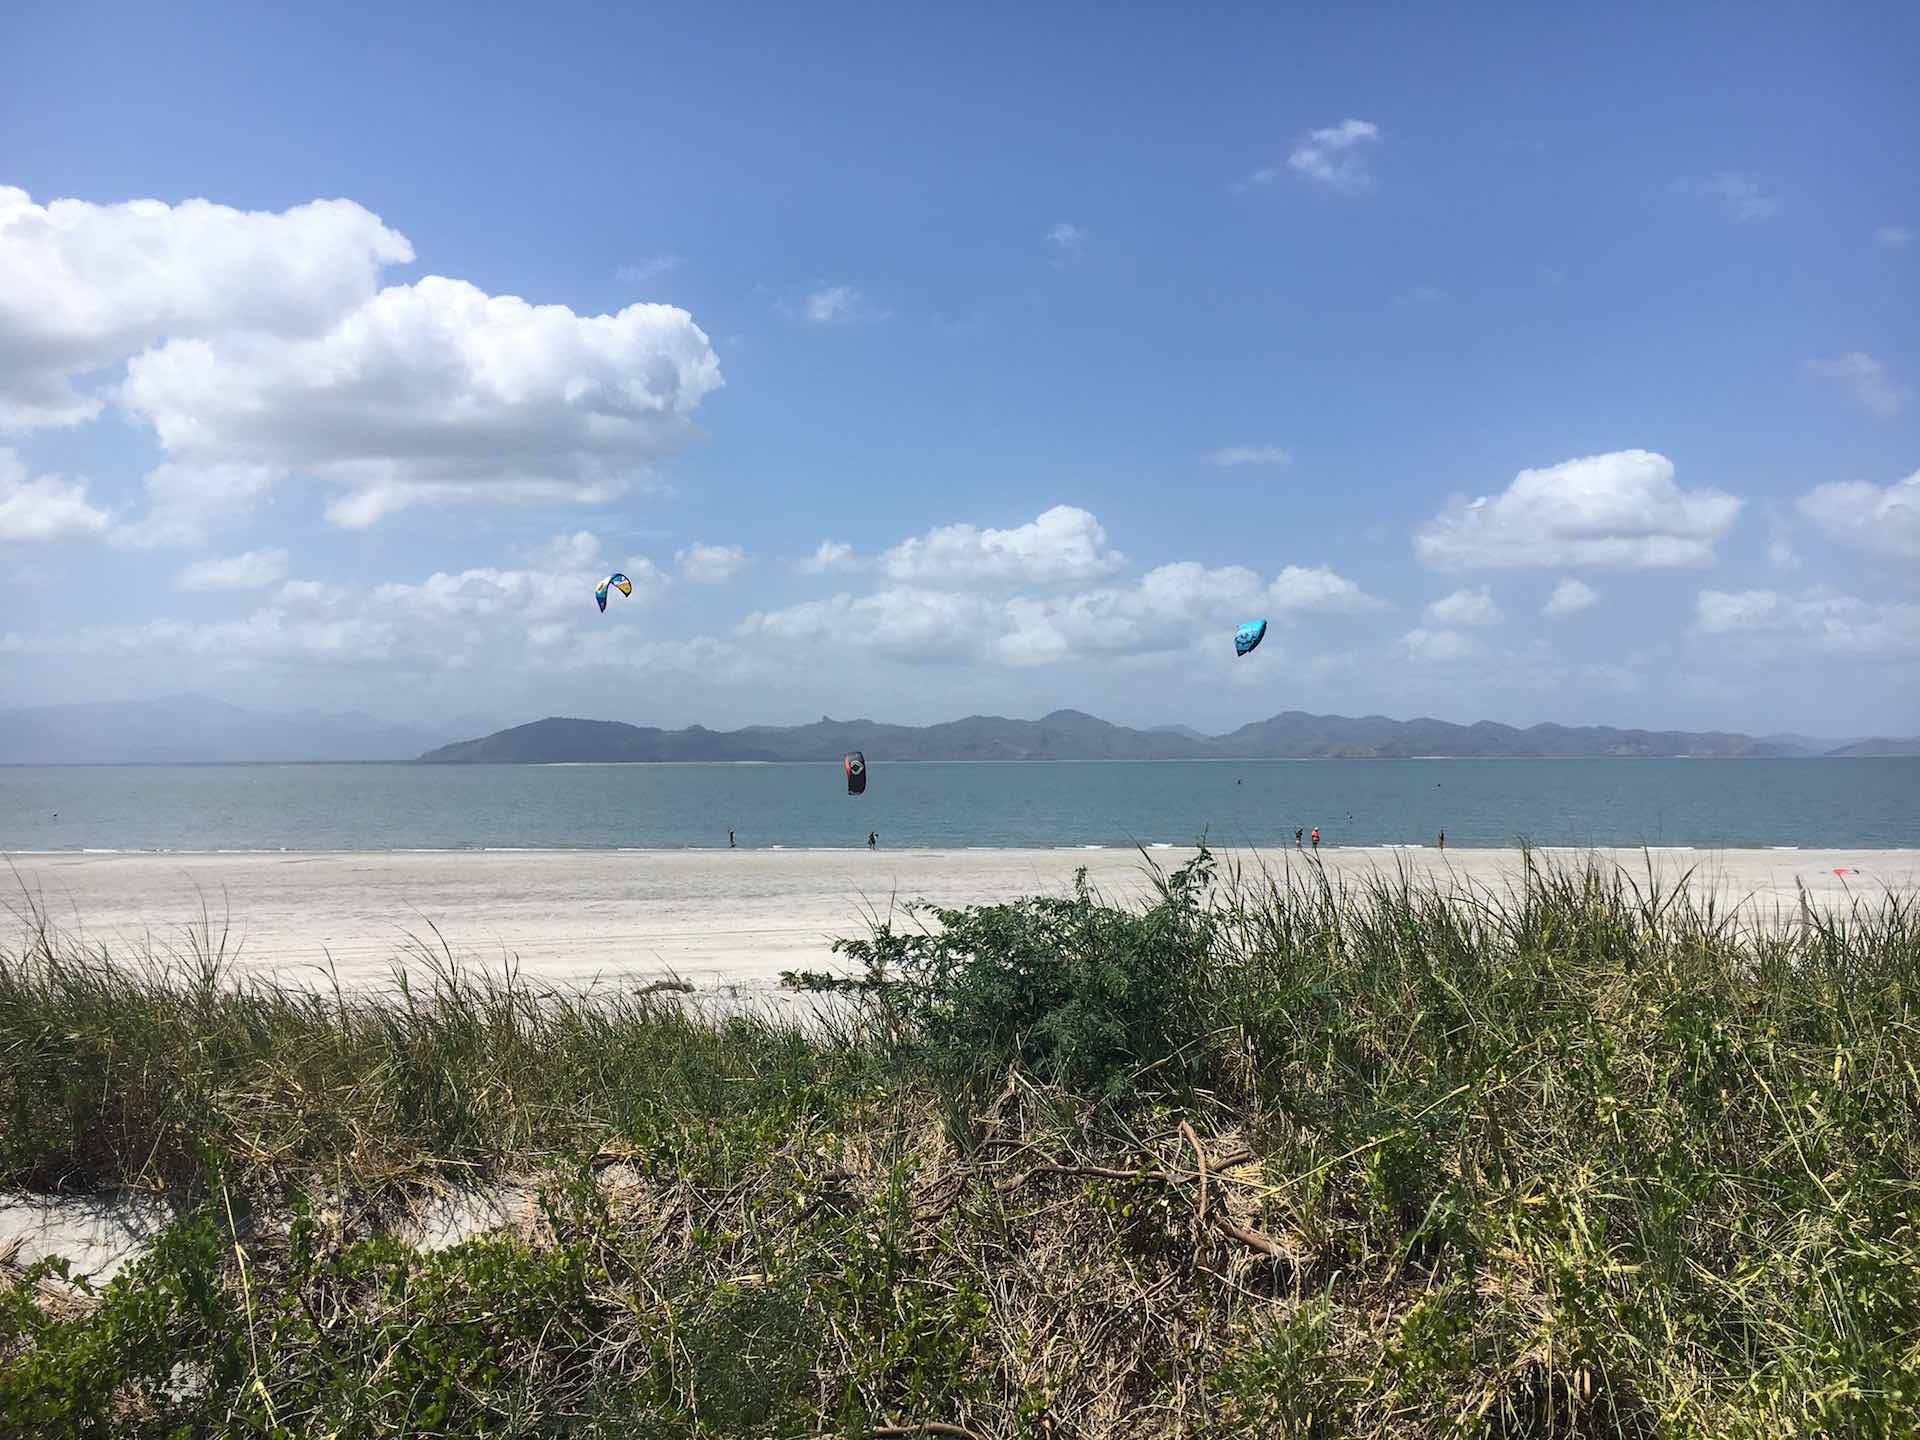 Punta Chame is the most famous kitesurfing spot in Panama